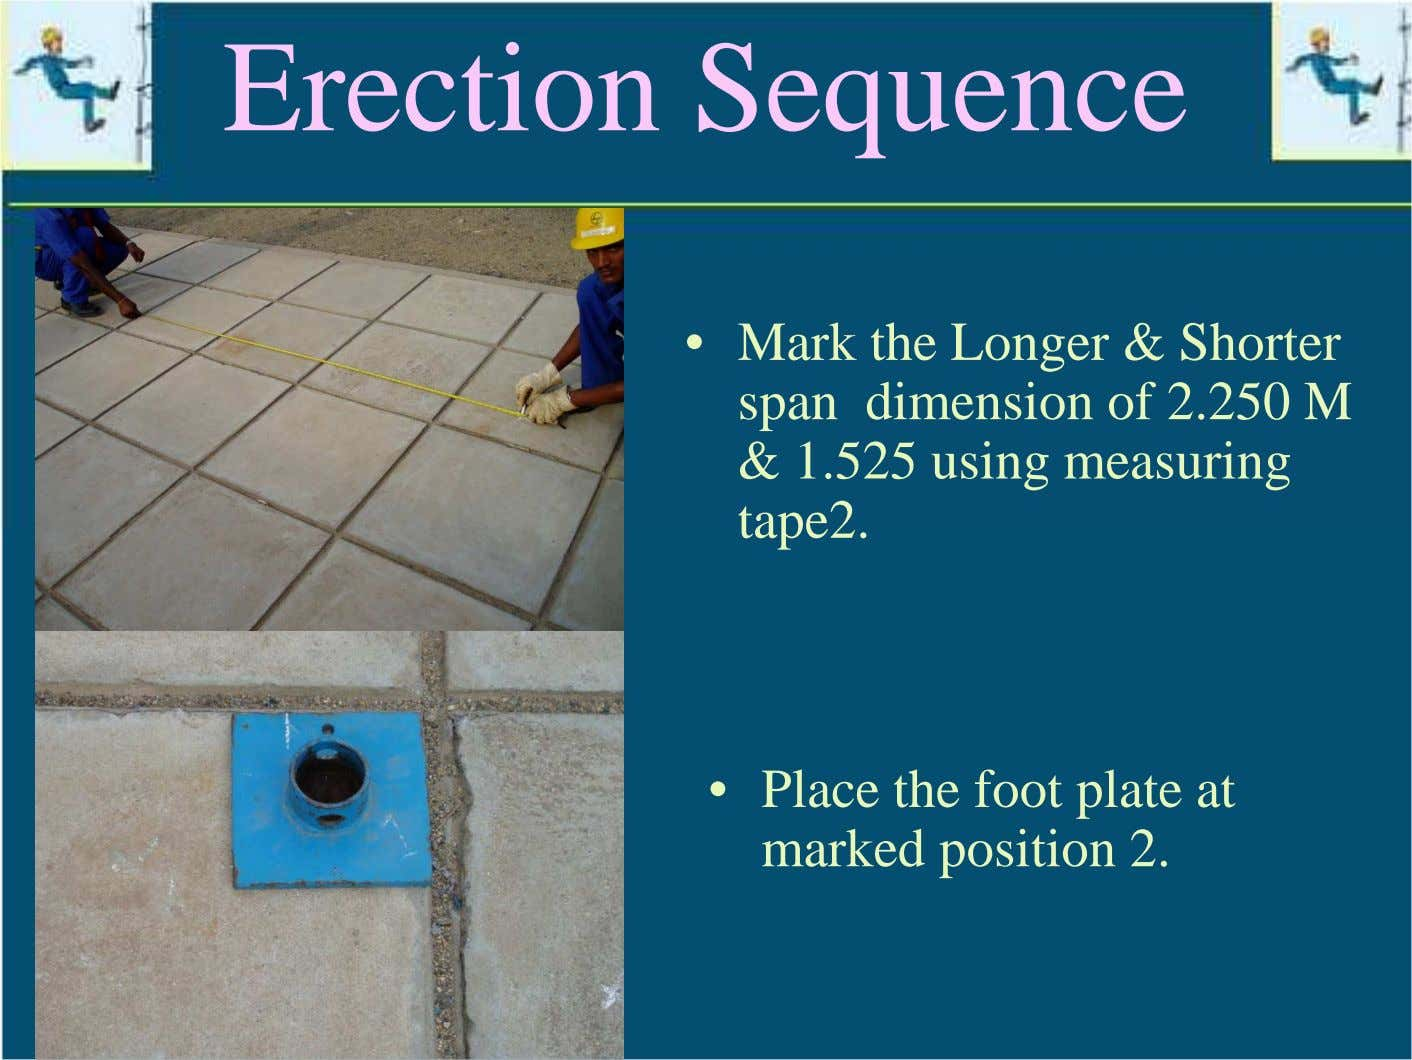 Erection Sequence • Mark the Longer & Shorter span dimension of 2.250 M & 1.525